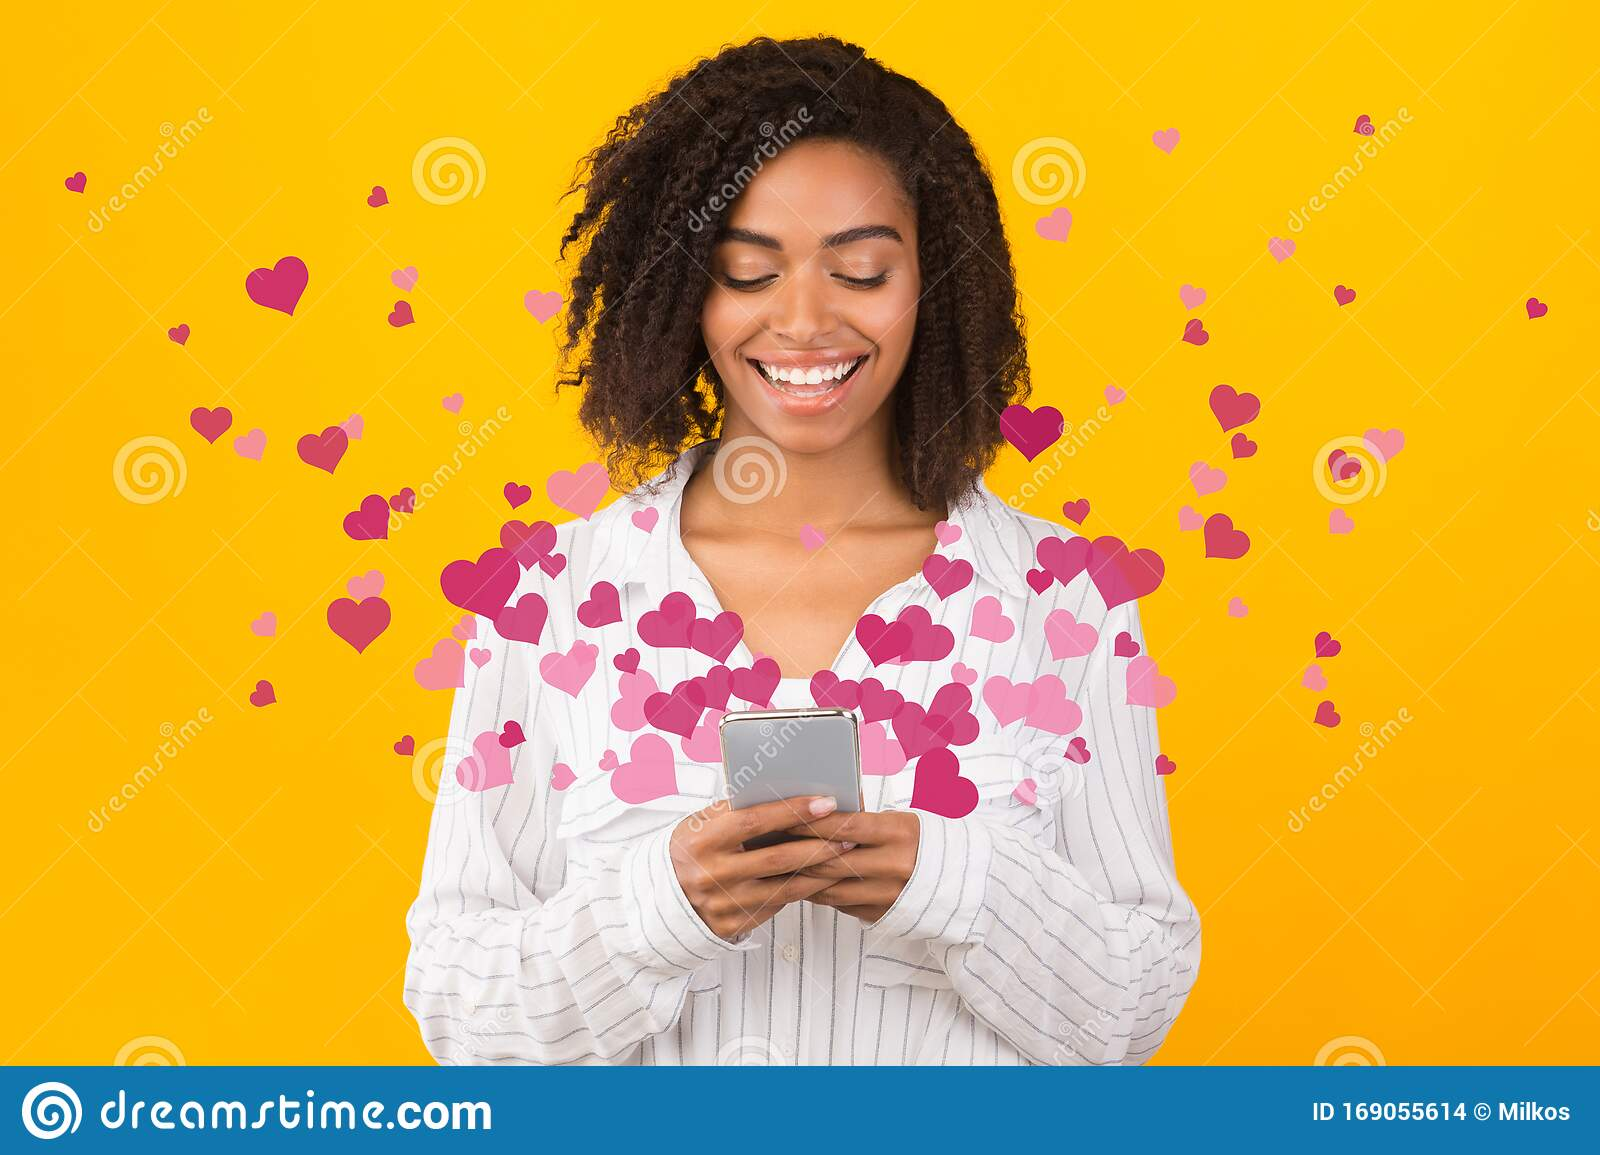 dating online sms